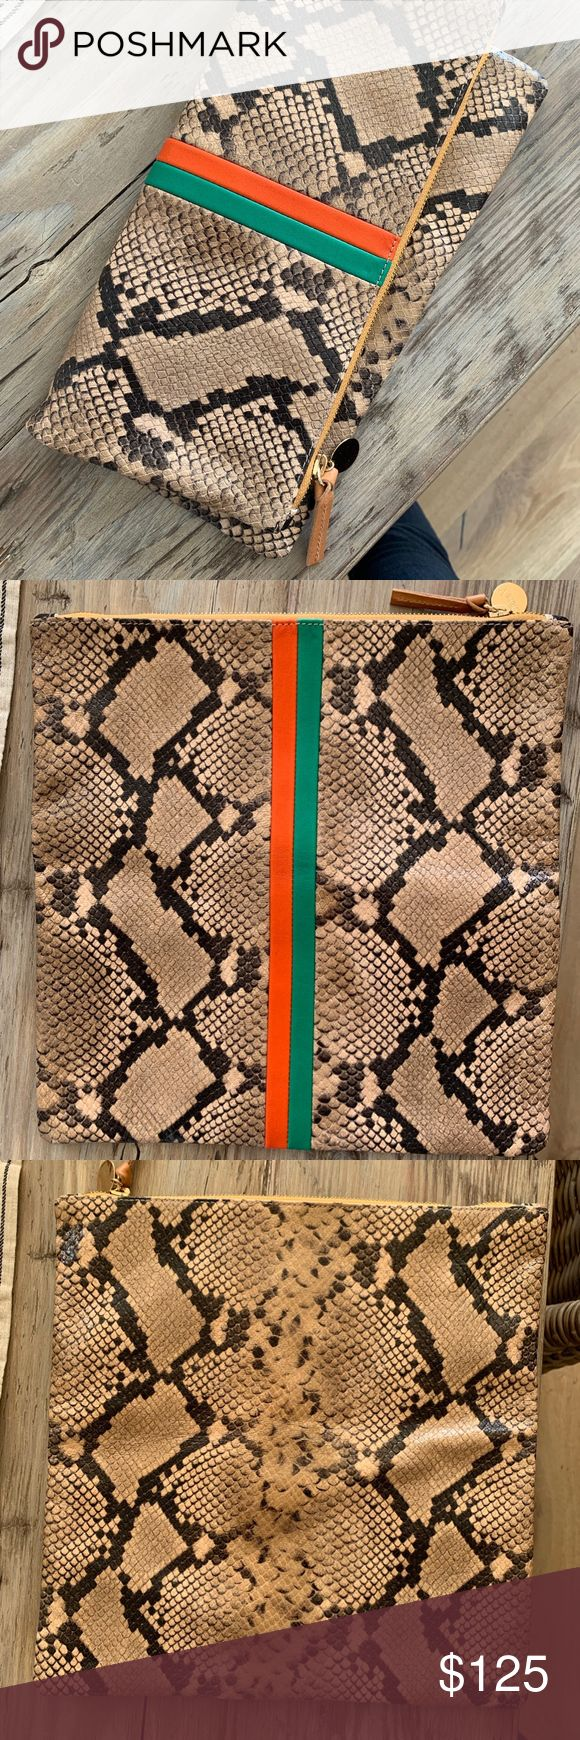 "Clare V. Snake Skin Clutch Clare V. Flodover Clutch.  Spring Snake Nappa Desert   New, never used Dimensions: 11.5""L x 11.5""W Lined in chambray Marigold zipper No interior compartments or pockets Holds a smartphone, small wallet, keys with a little room to spare Green & Orange inlaid stripes are made from drum dyed Italian lambskin that is smooth and vibrant in color Tan Spring Snake is made from embossed cowhide.  Embossed leather can be wiped with a damp cloth but only very gently to maintai"